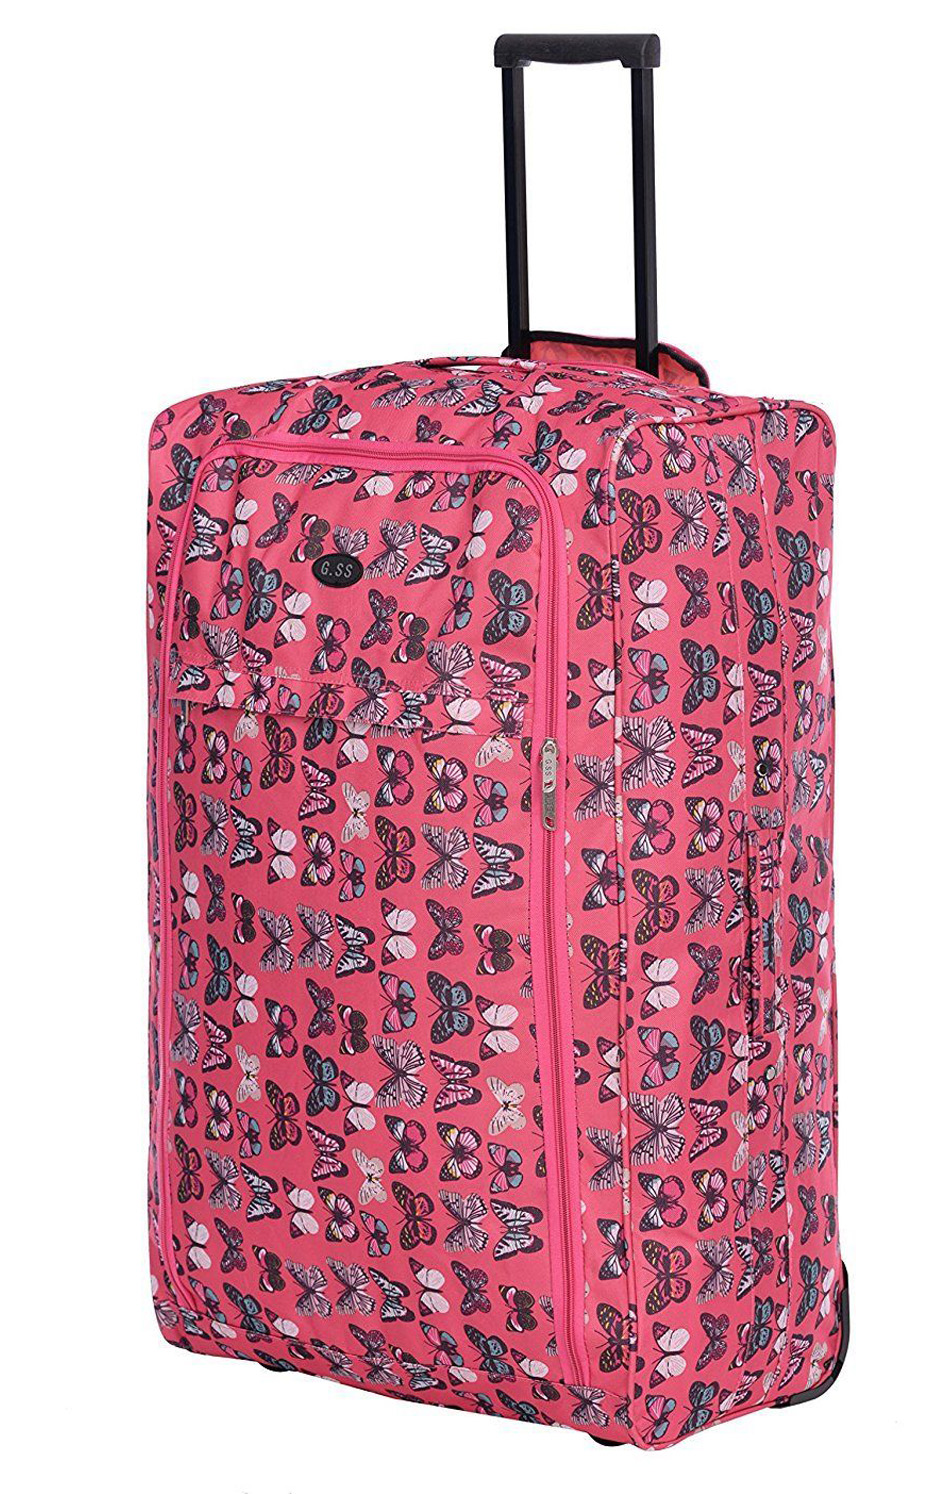 Pink Butterfly Suitcase Luggage Heaven